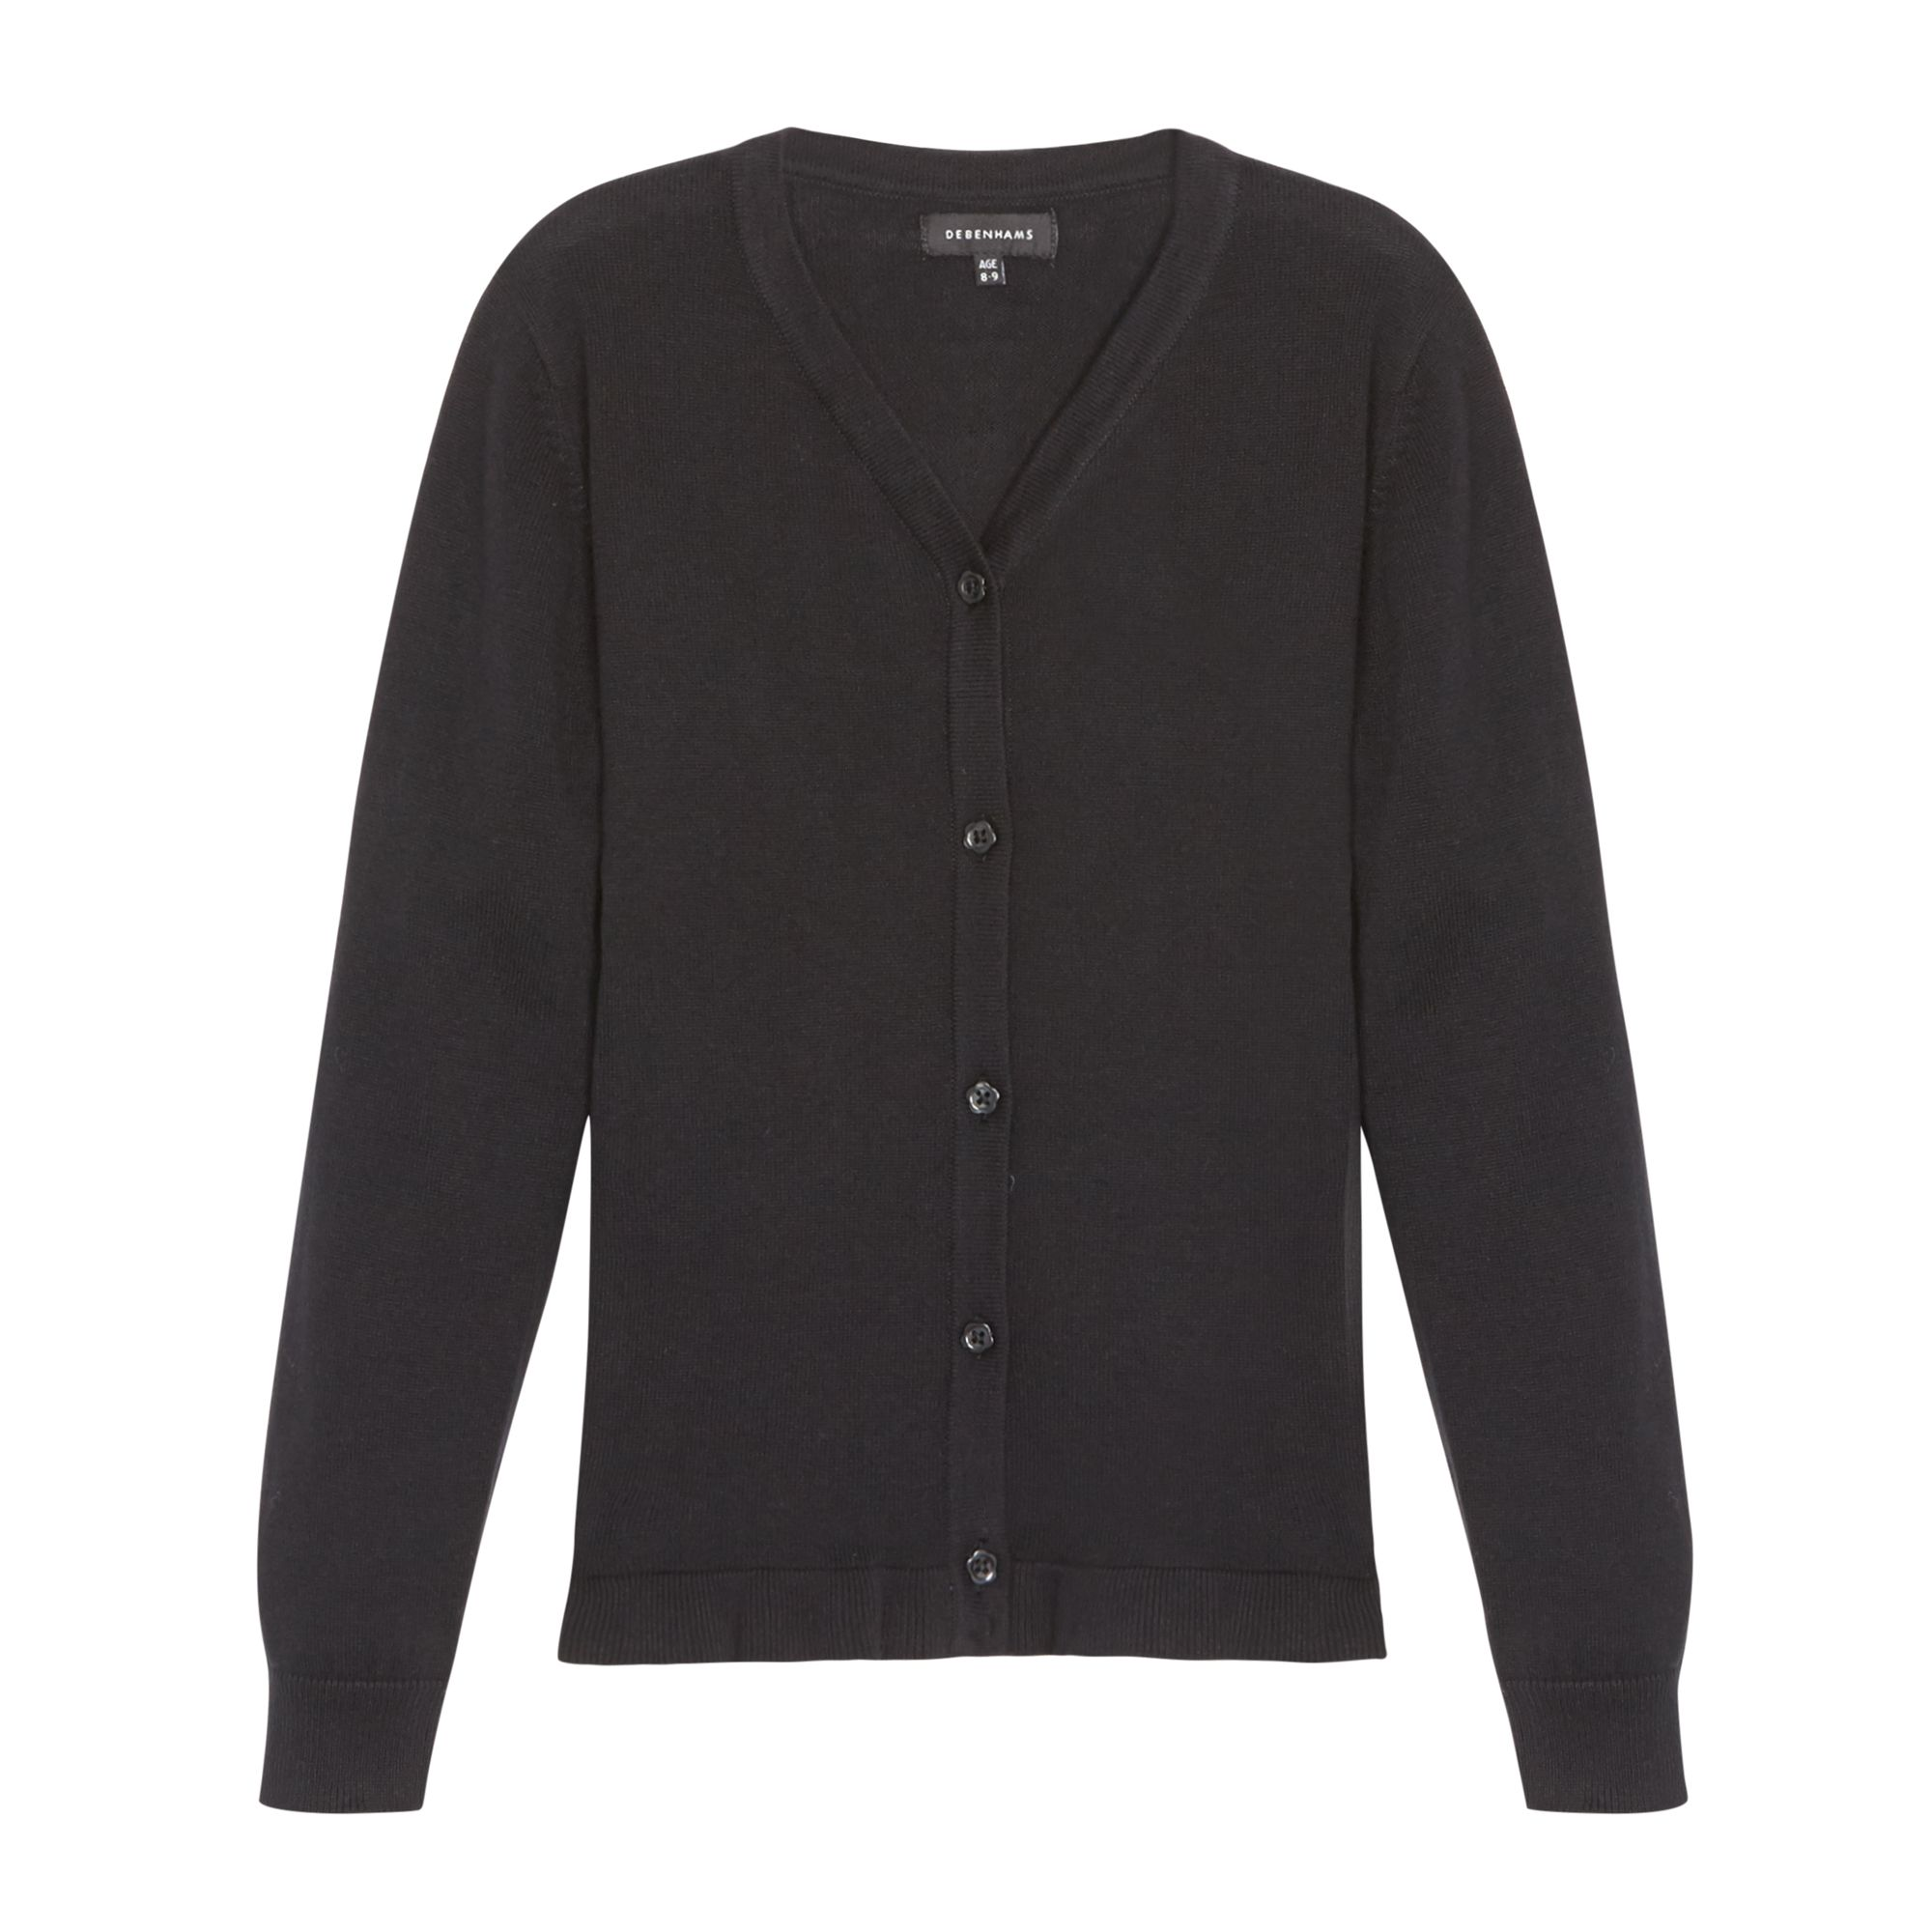 Best prices on Black cardigan childrens sweater in Baby & Kids' Sweaters online. Visit Bizrate to find the best deals on top brands. Read reviews on Babies & Kids merchants and buy with confidence.